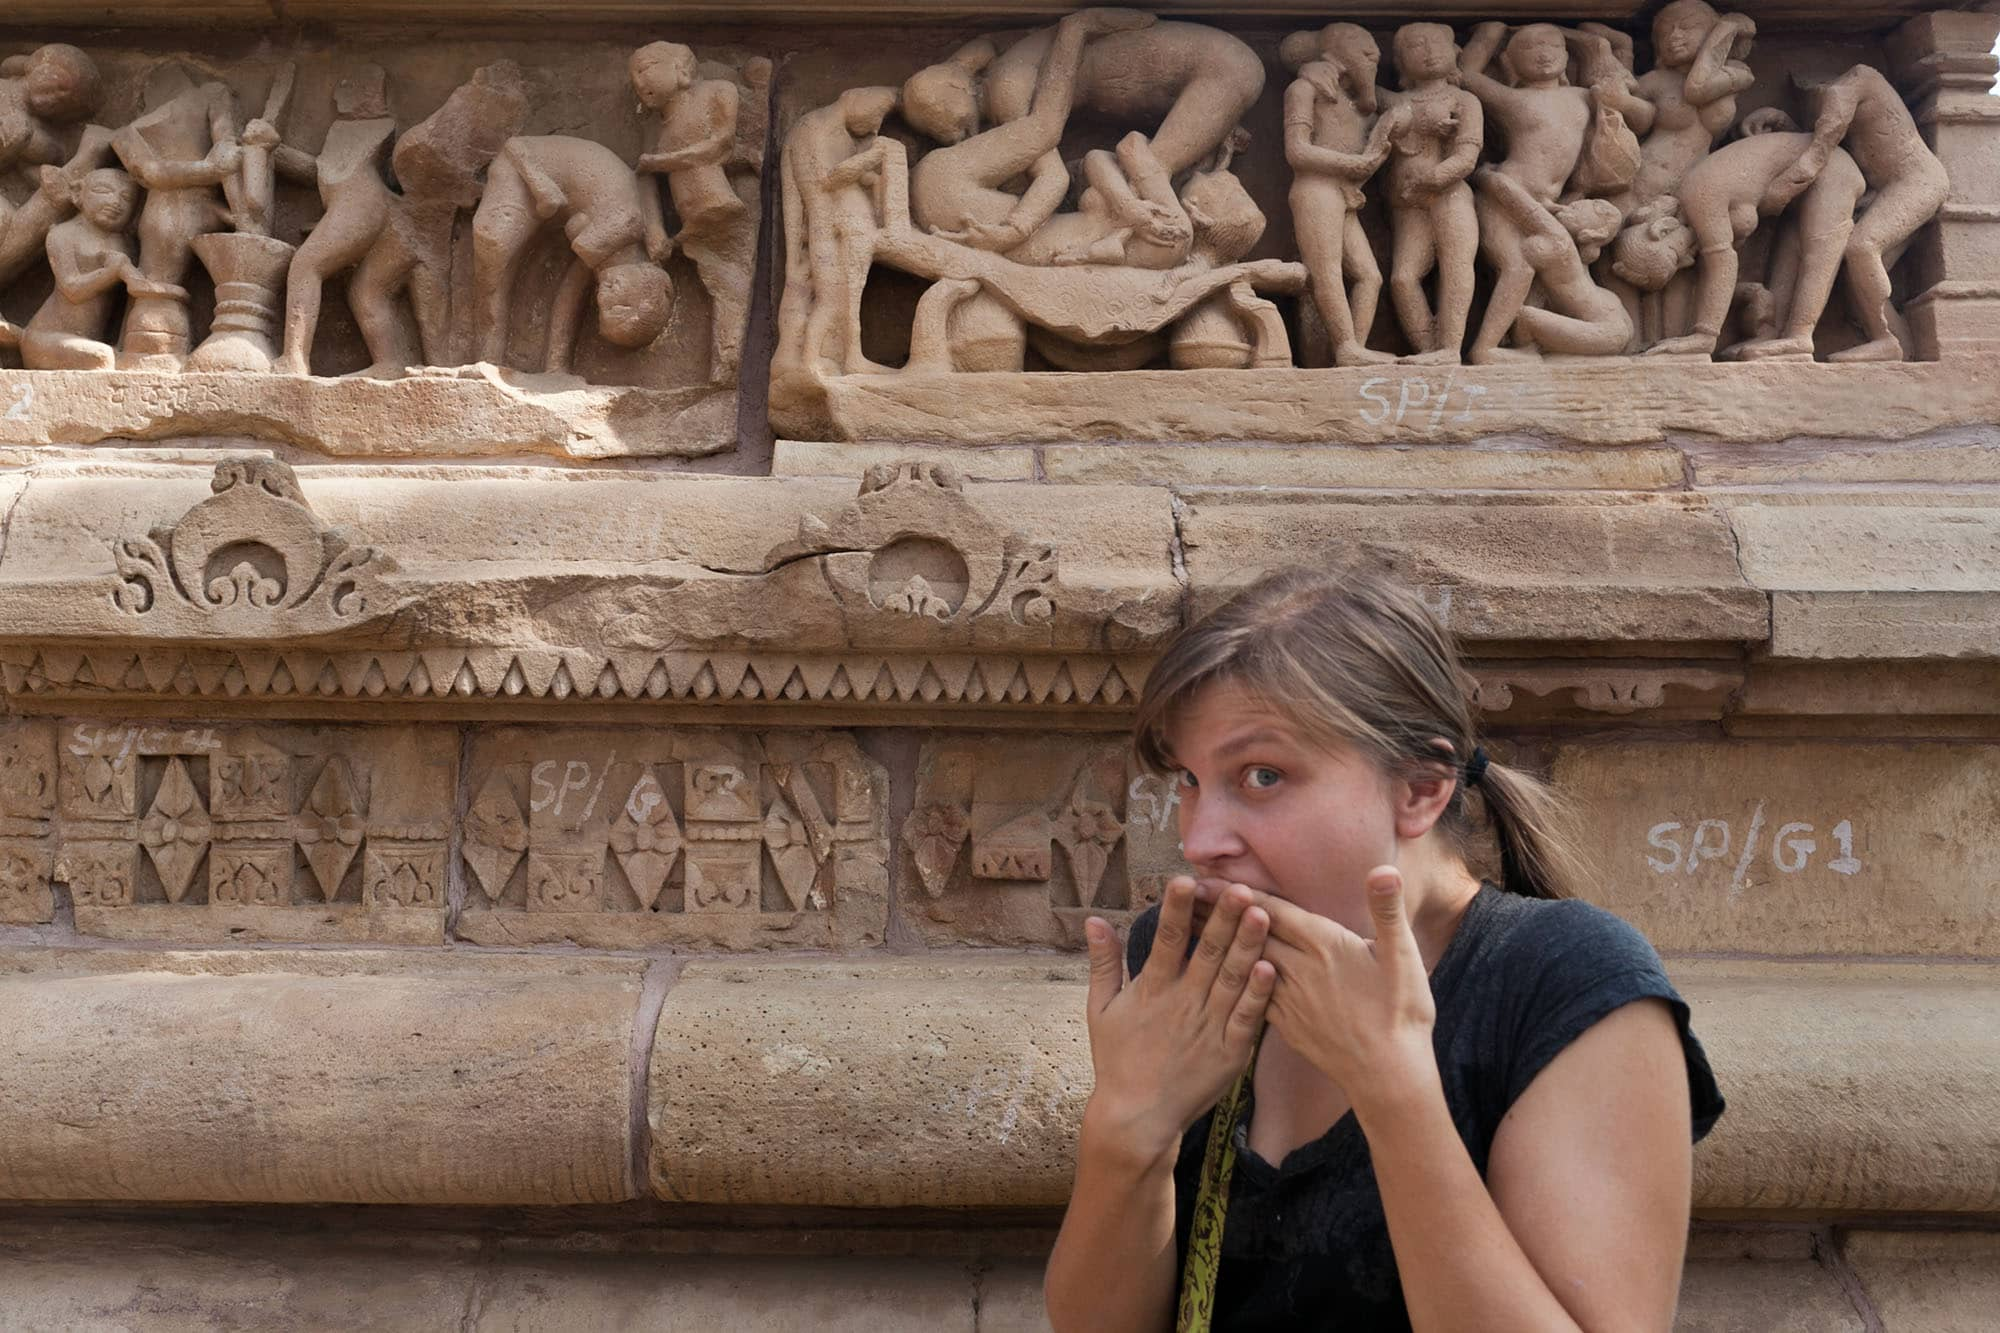 Posing at the Khajuraho Sex Temples -- Western Group sex temples in Khajuraho, India.